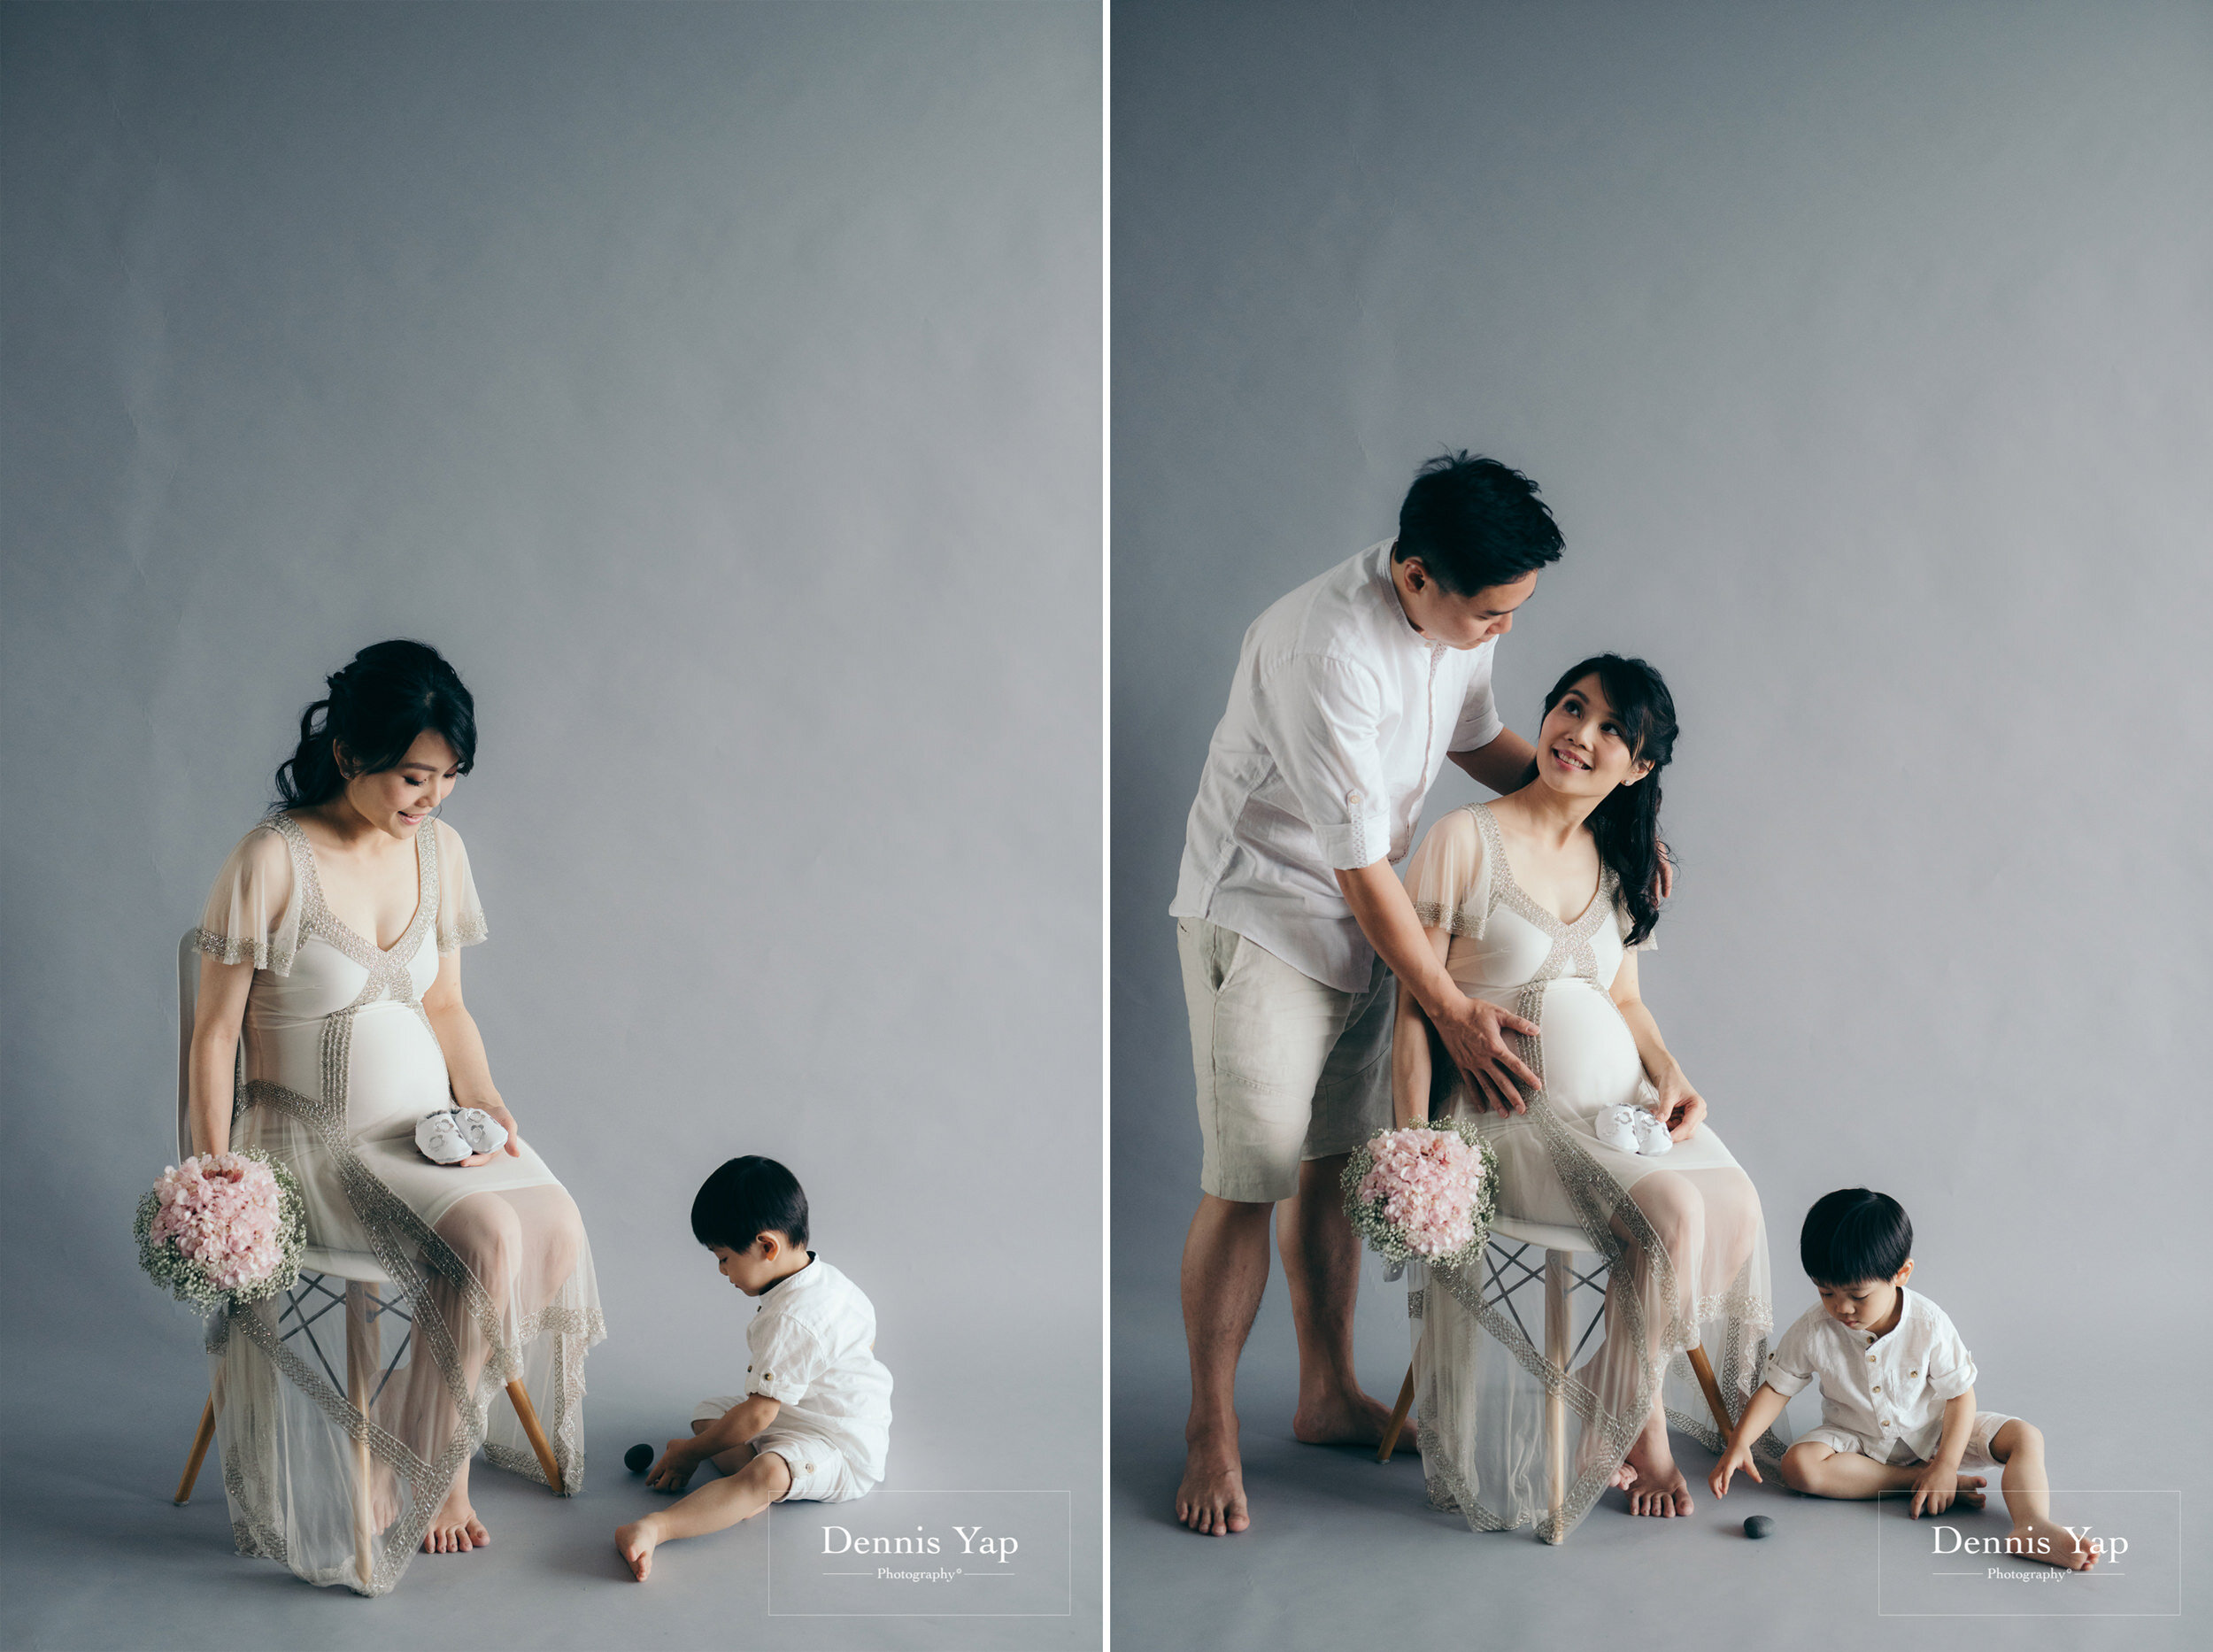 hwee jenna family maternity portrait portrait dennis yap photography beloved studio indoor-125.jpg